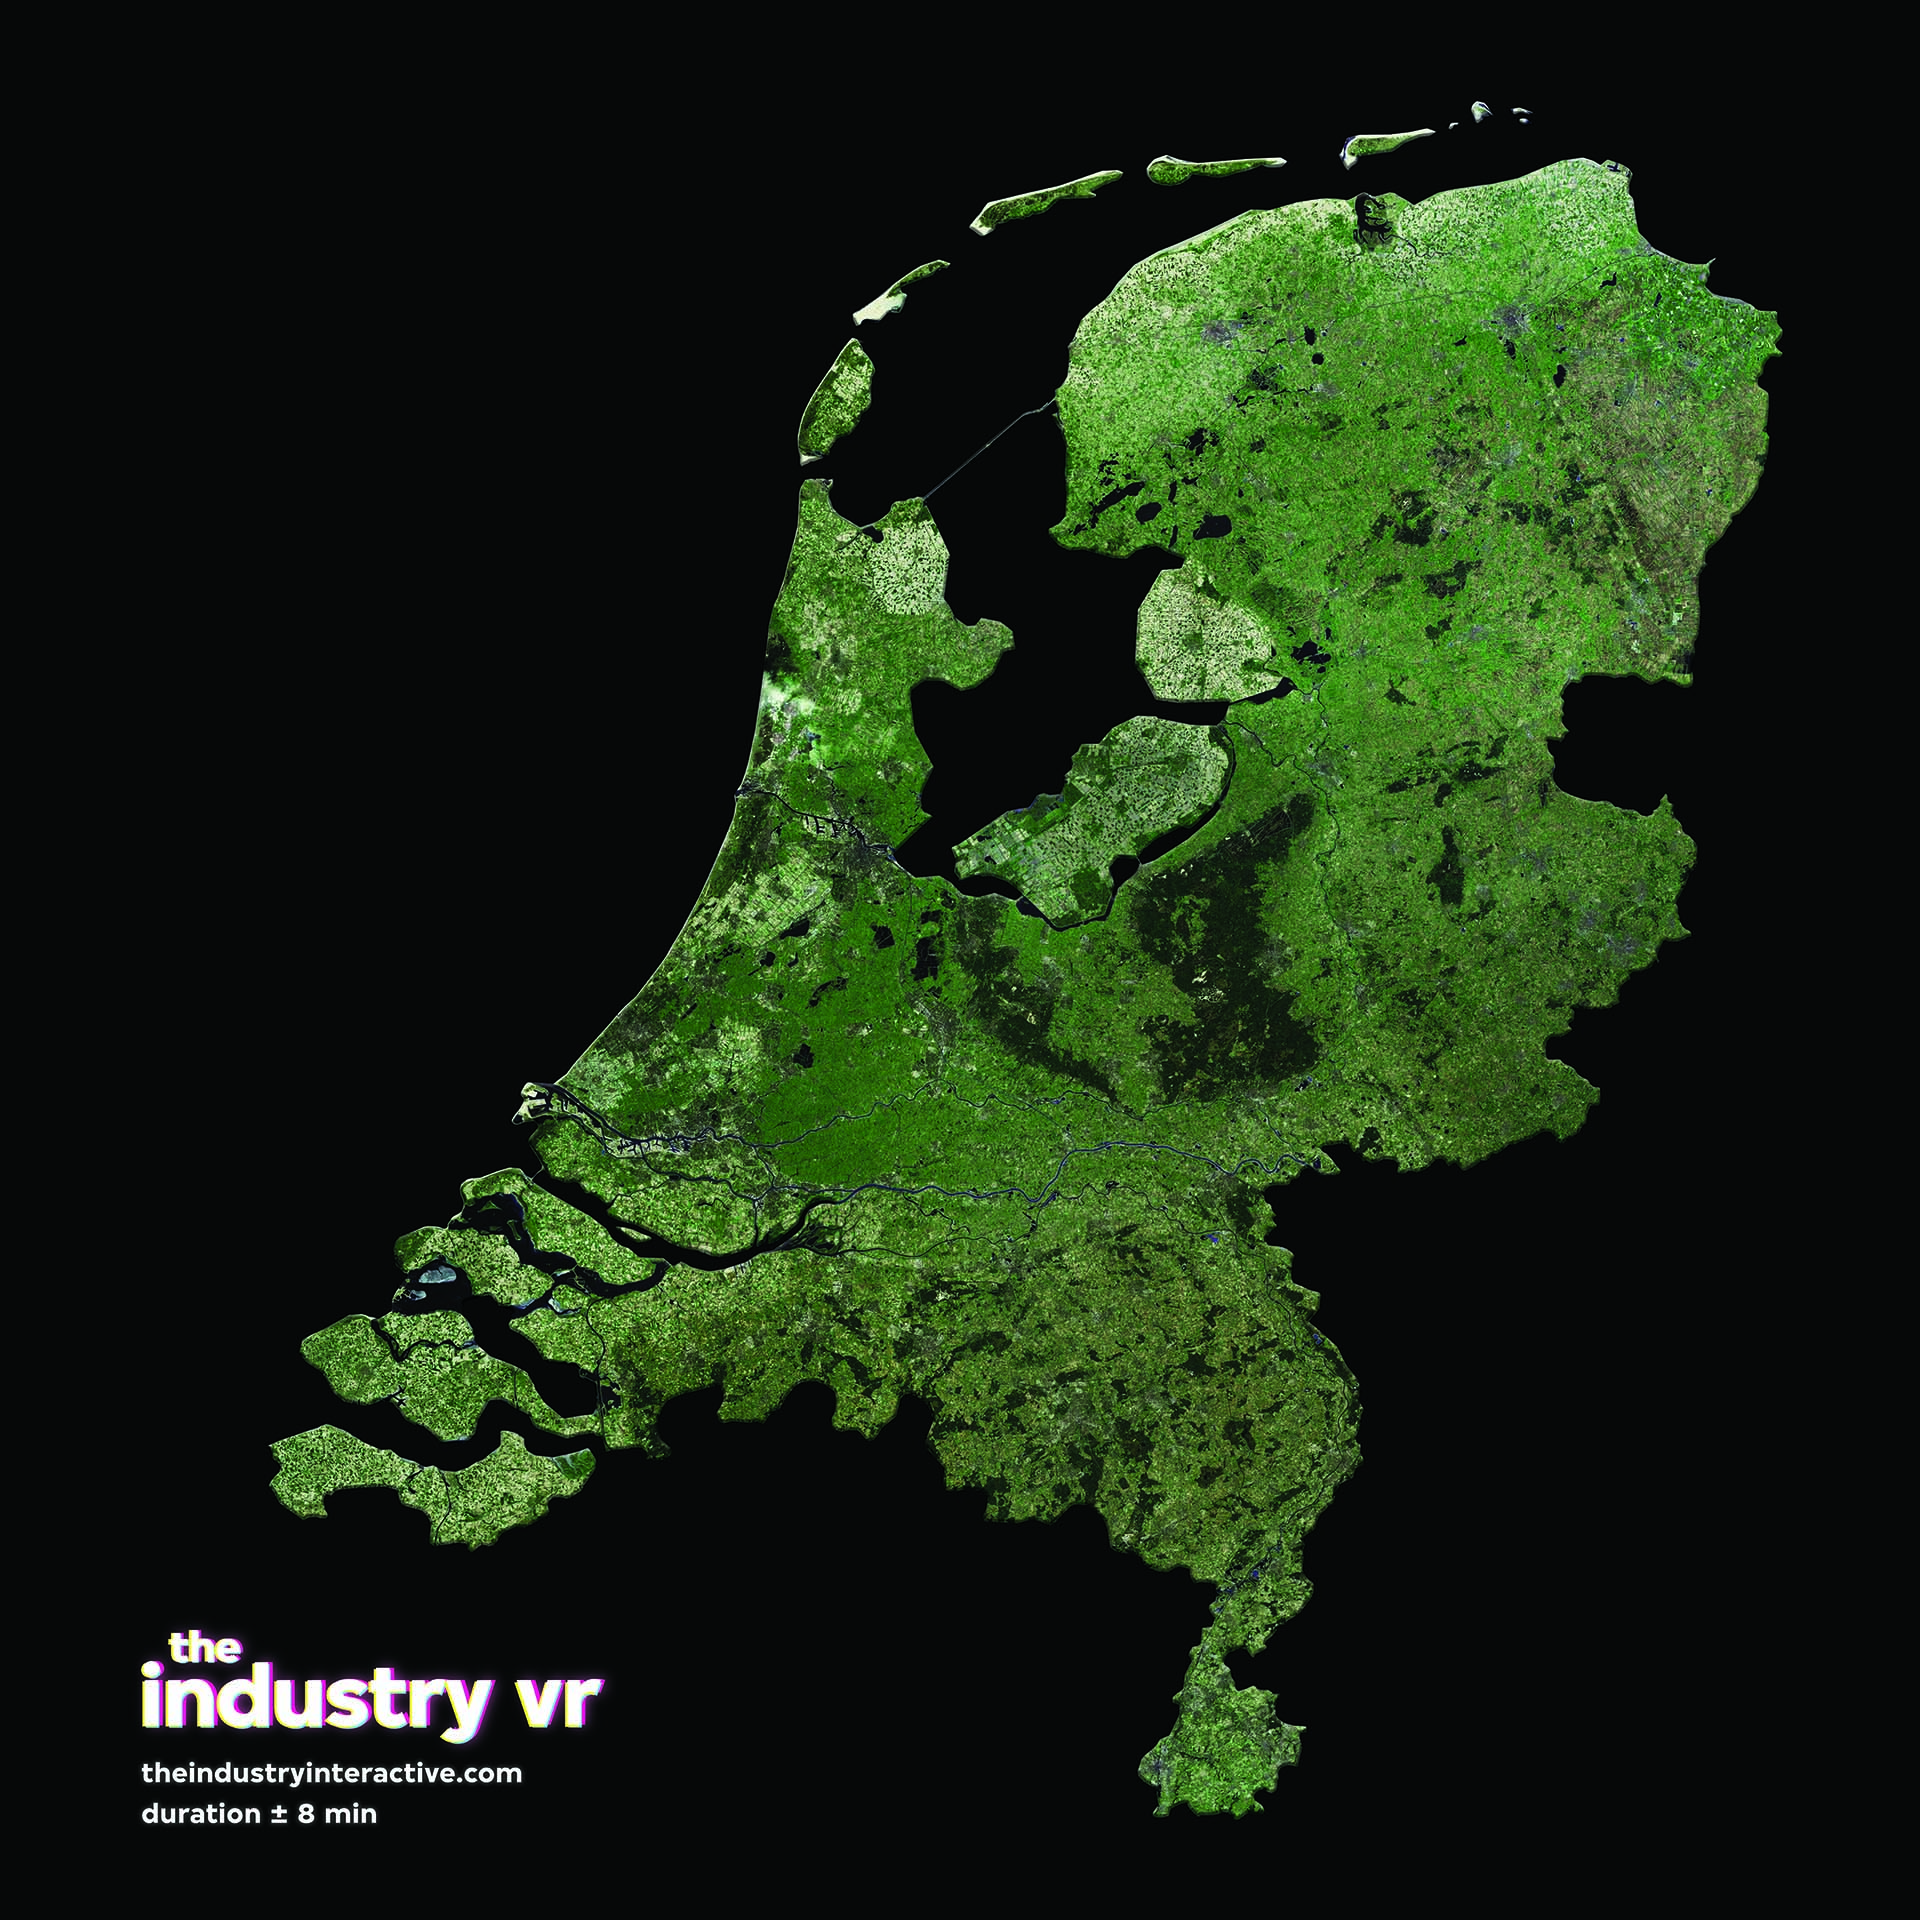 De Industrie The Industry mapping drug economy in the Netherlands